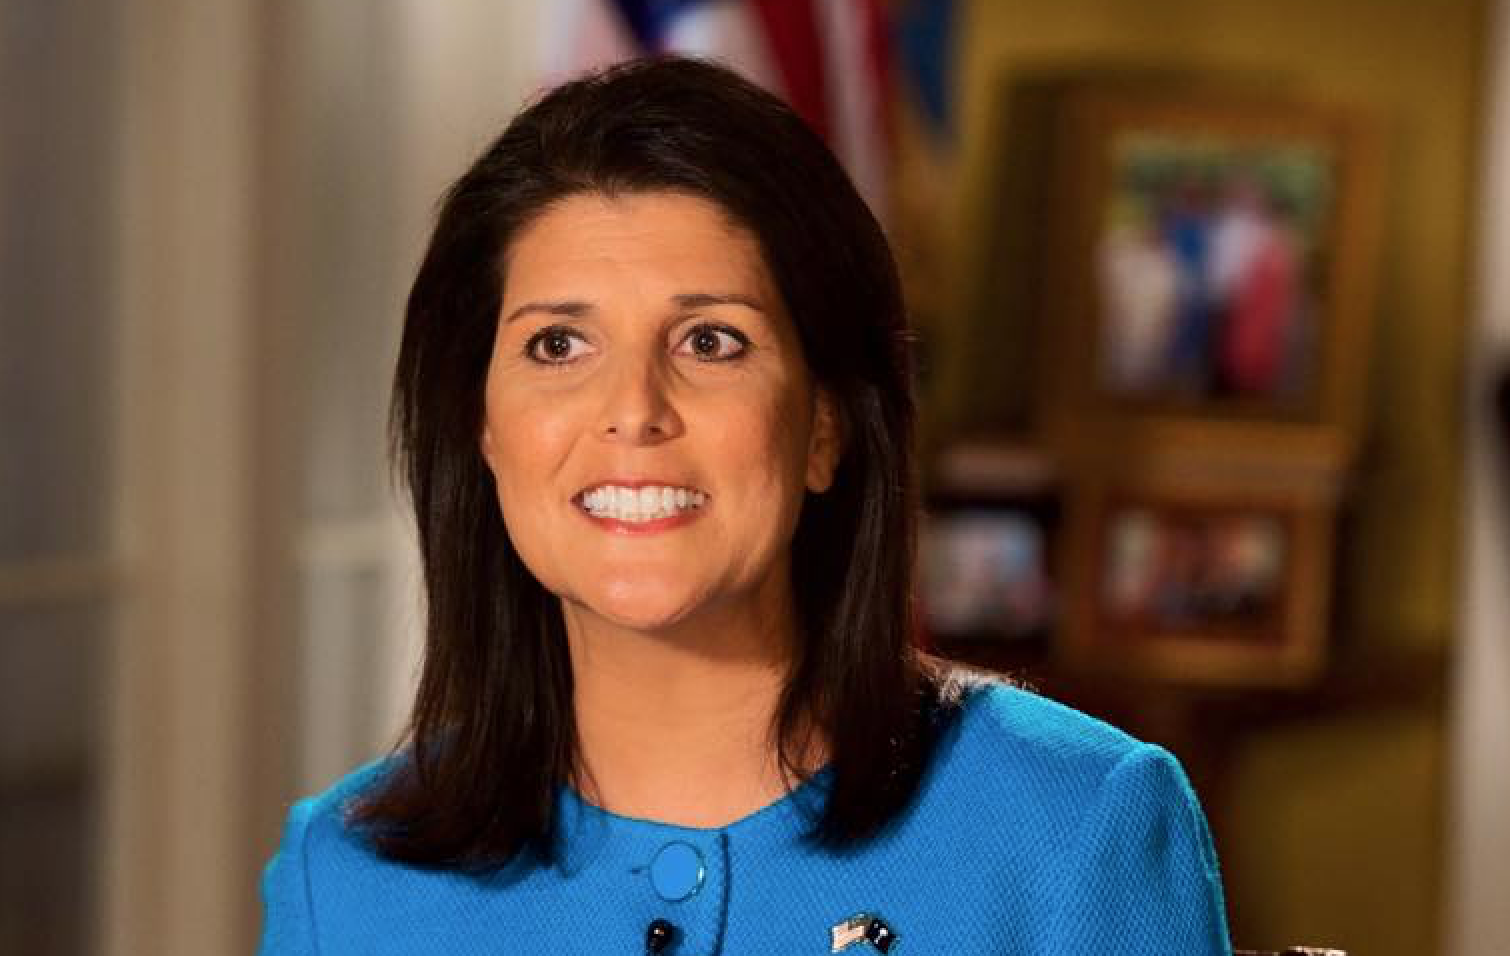 Haley considered for Secretary of State?